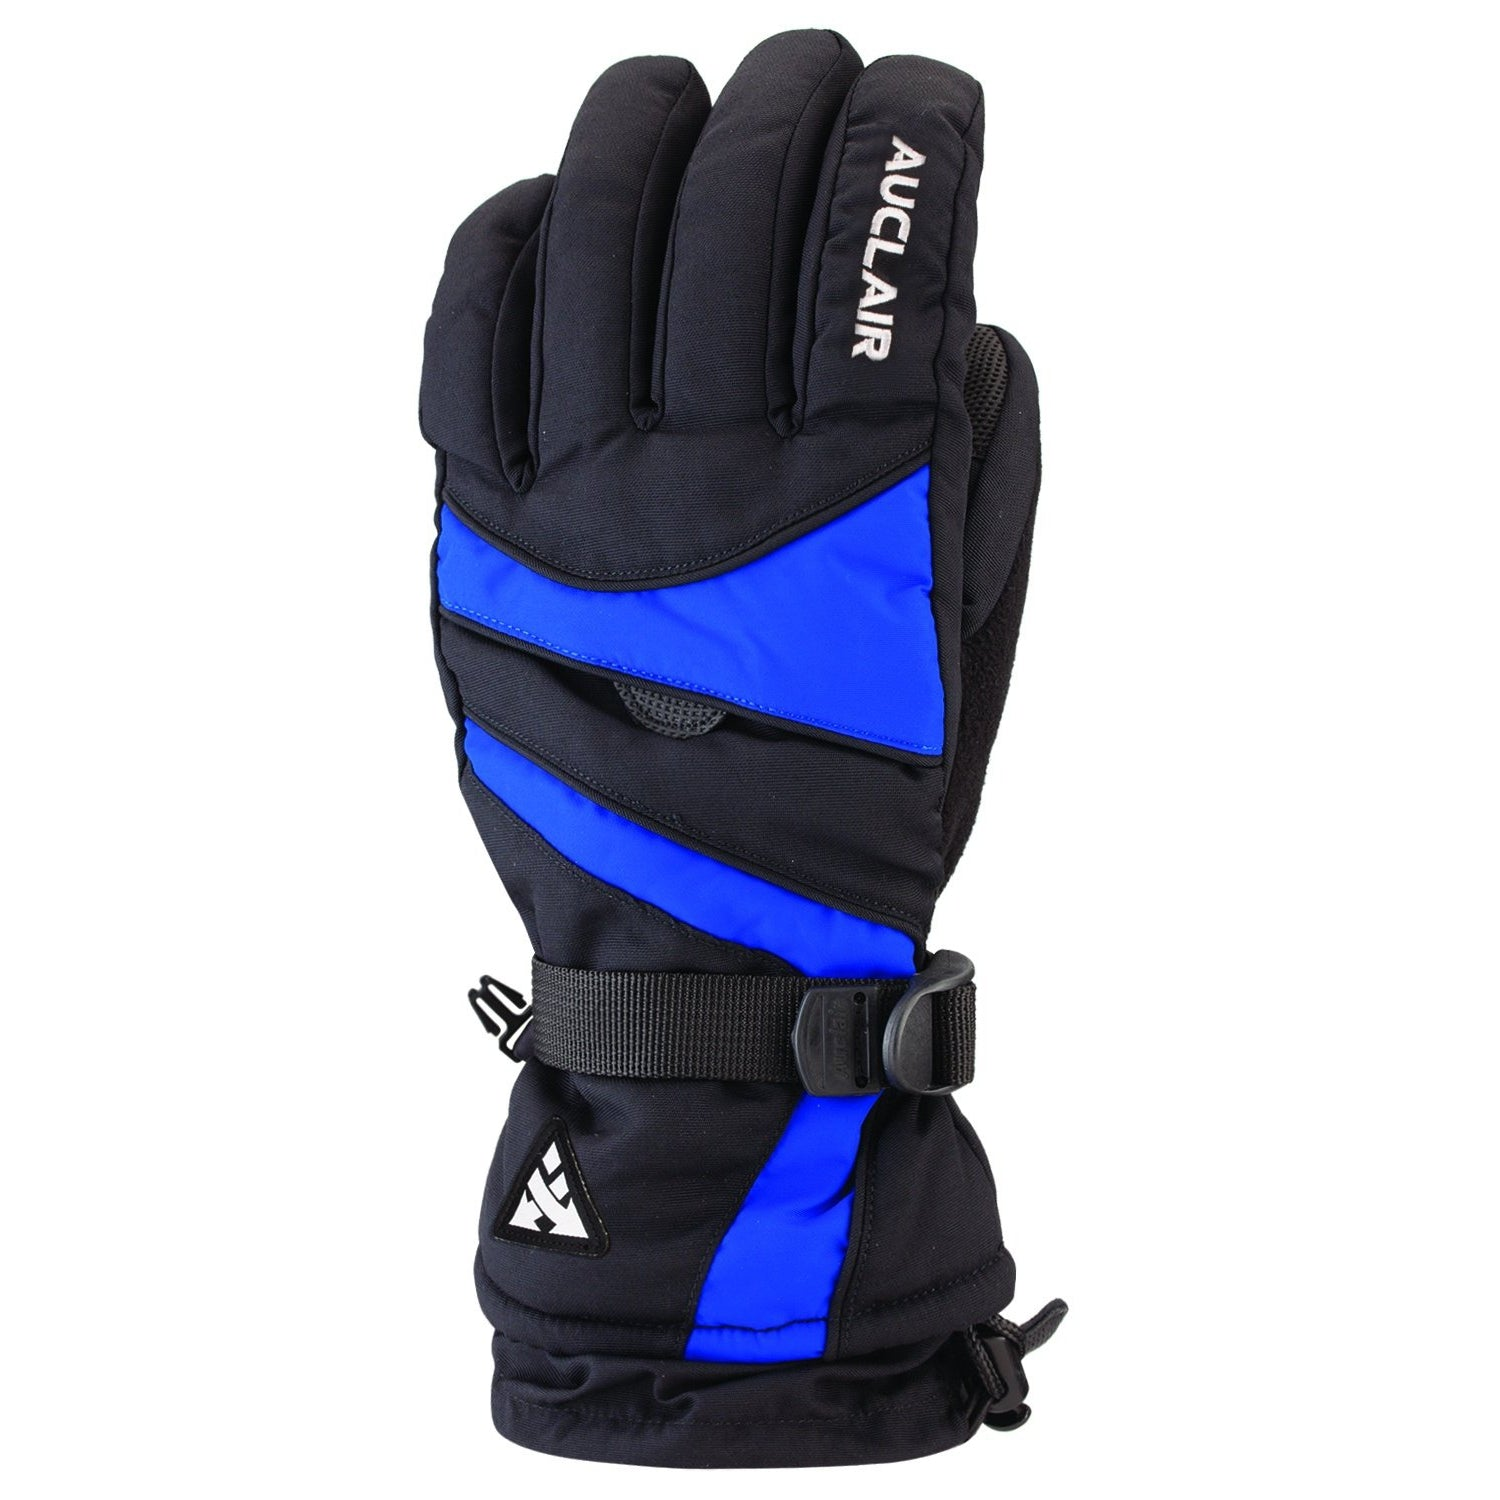 Auclair 2021 Snowking Glove